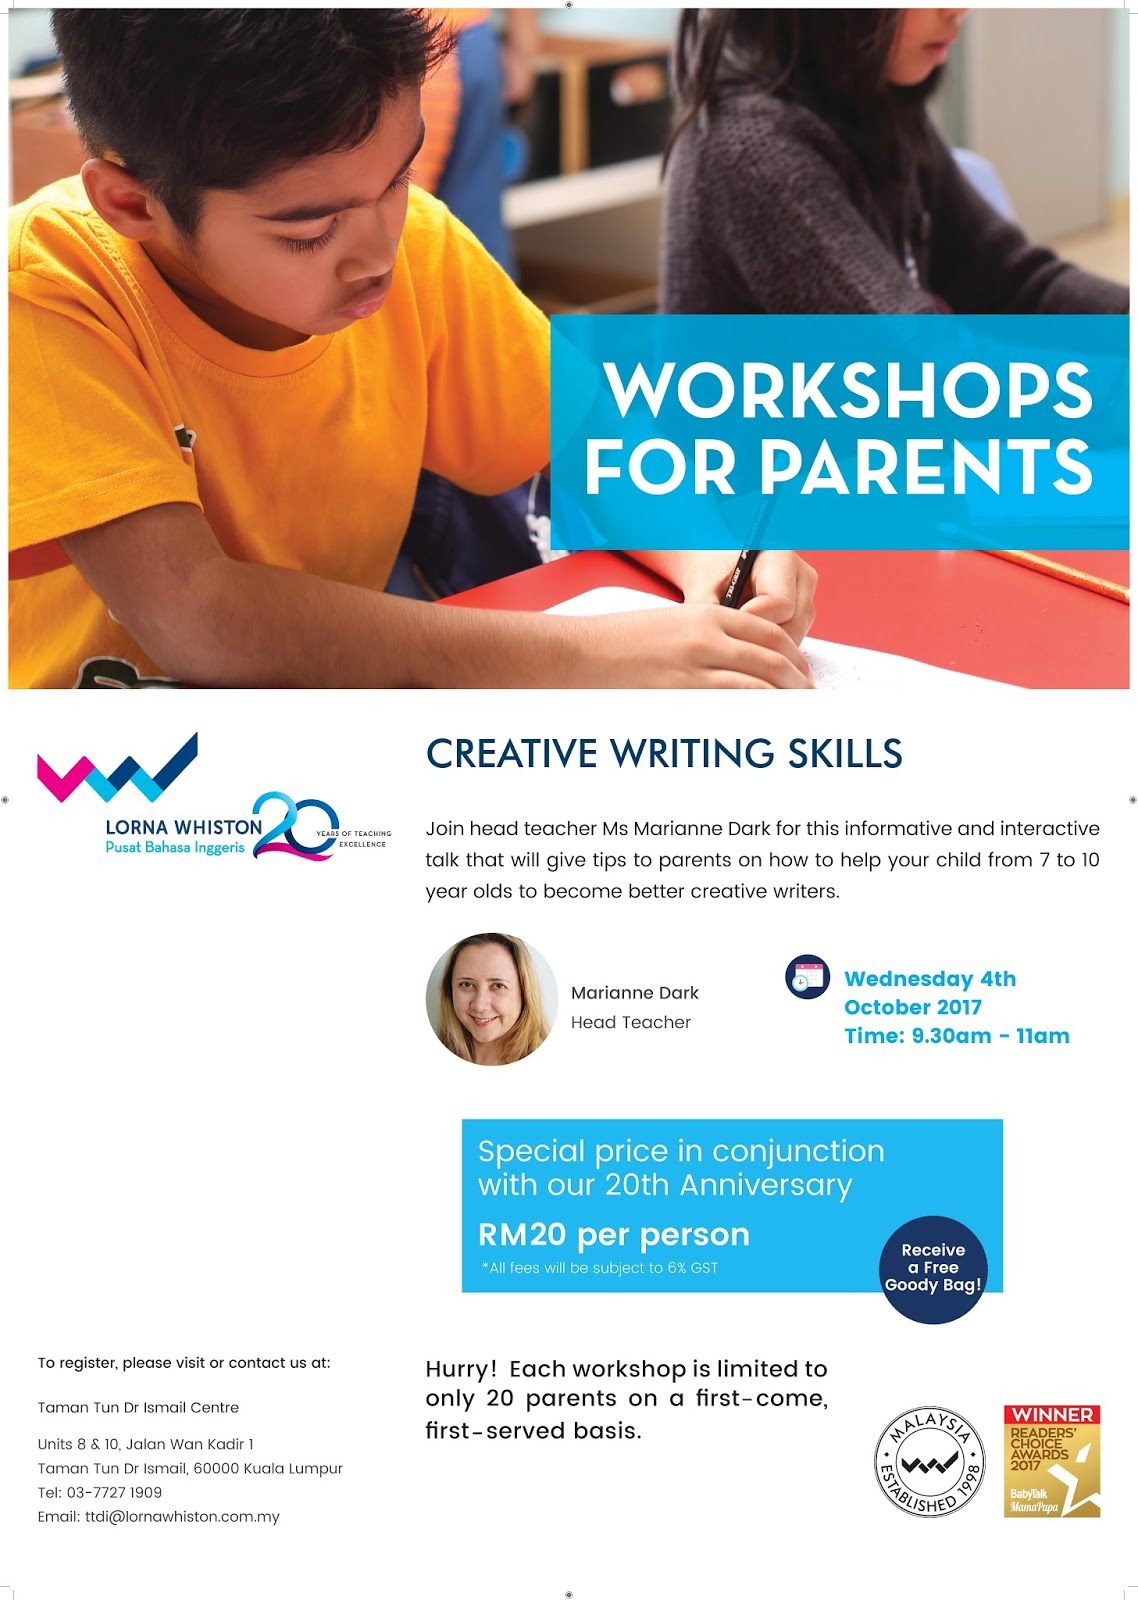 Advice For Parents Of Children Just >> Parents Workshop Tips To Help Your Child Become Better Creative